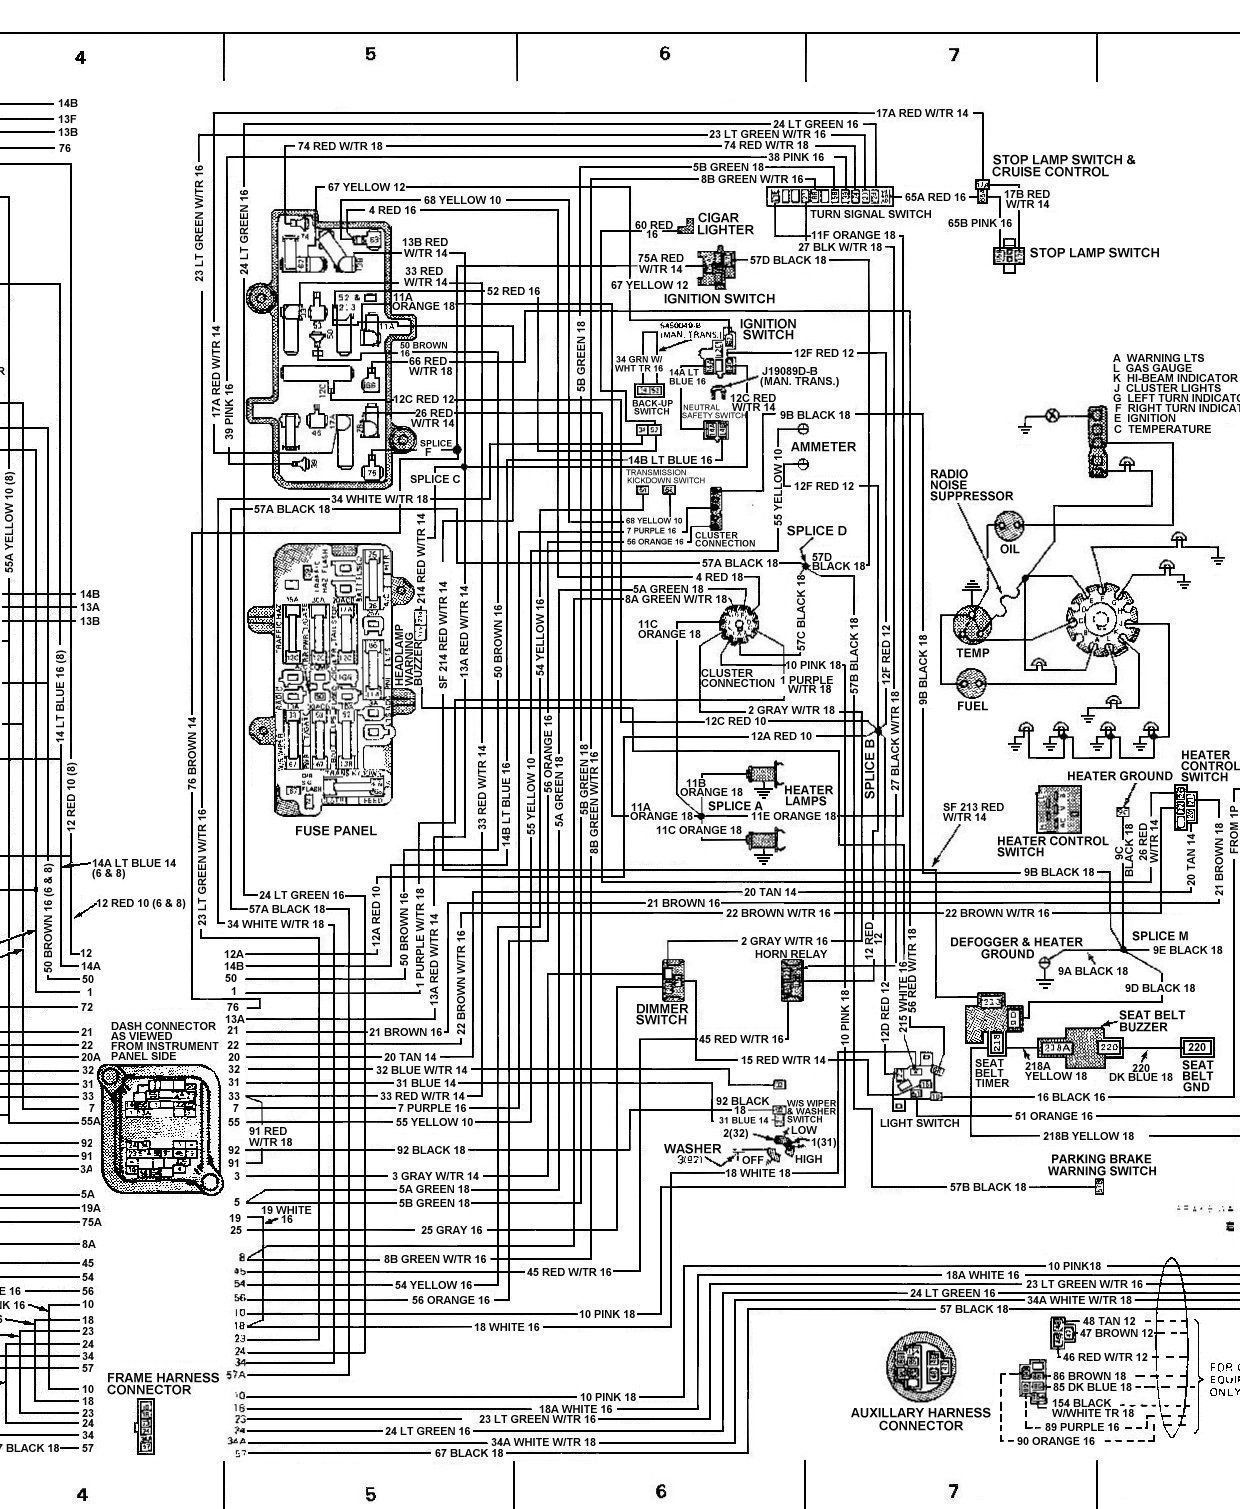 232951 vw jetta wiring diagram pdf vw wiring diagrams instruction 2005 jetta fuse box diagram at bayanpartner.co